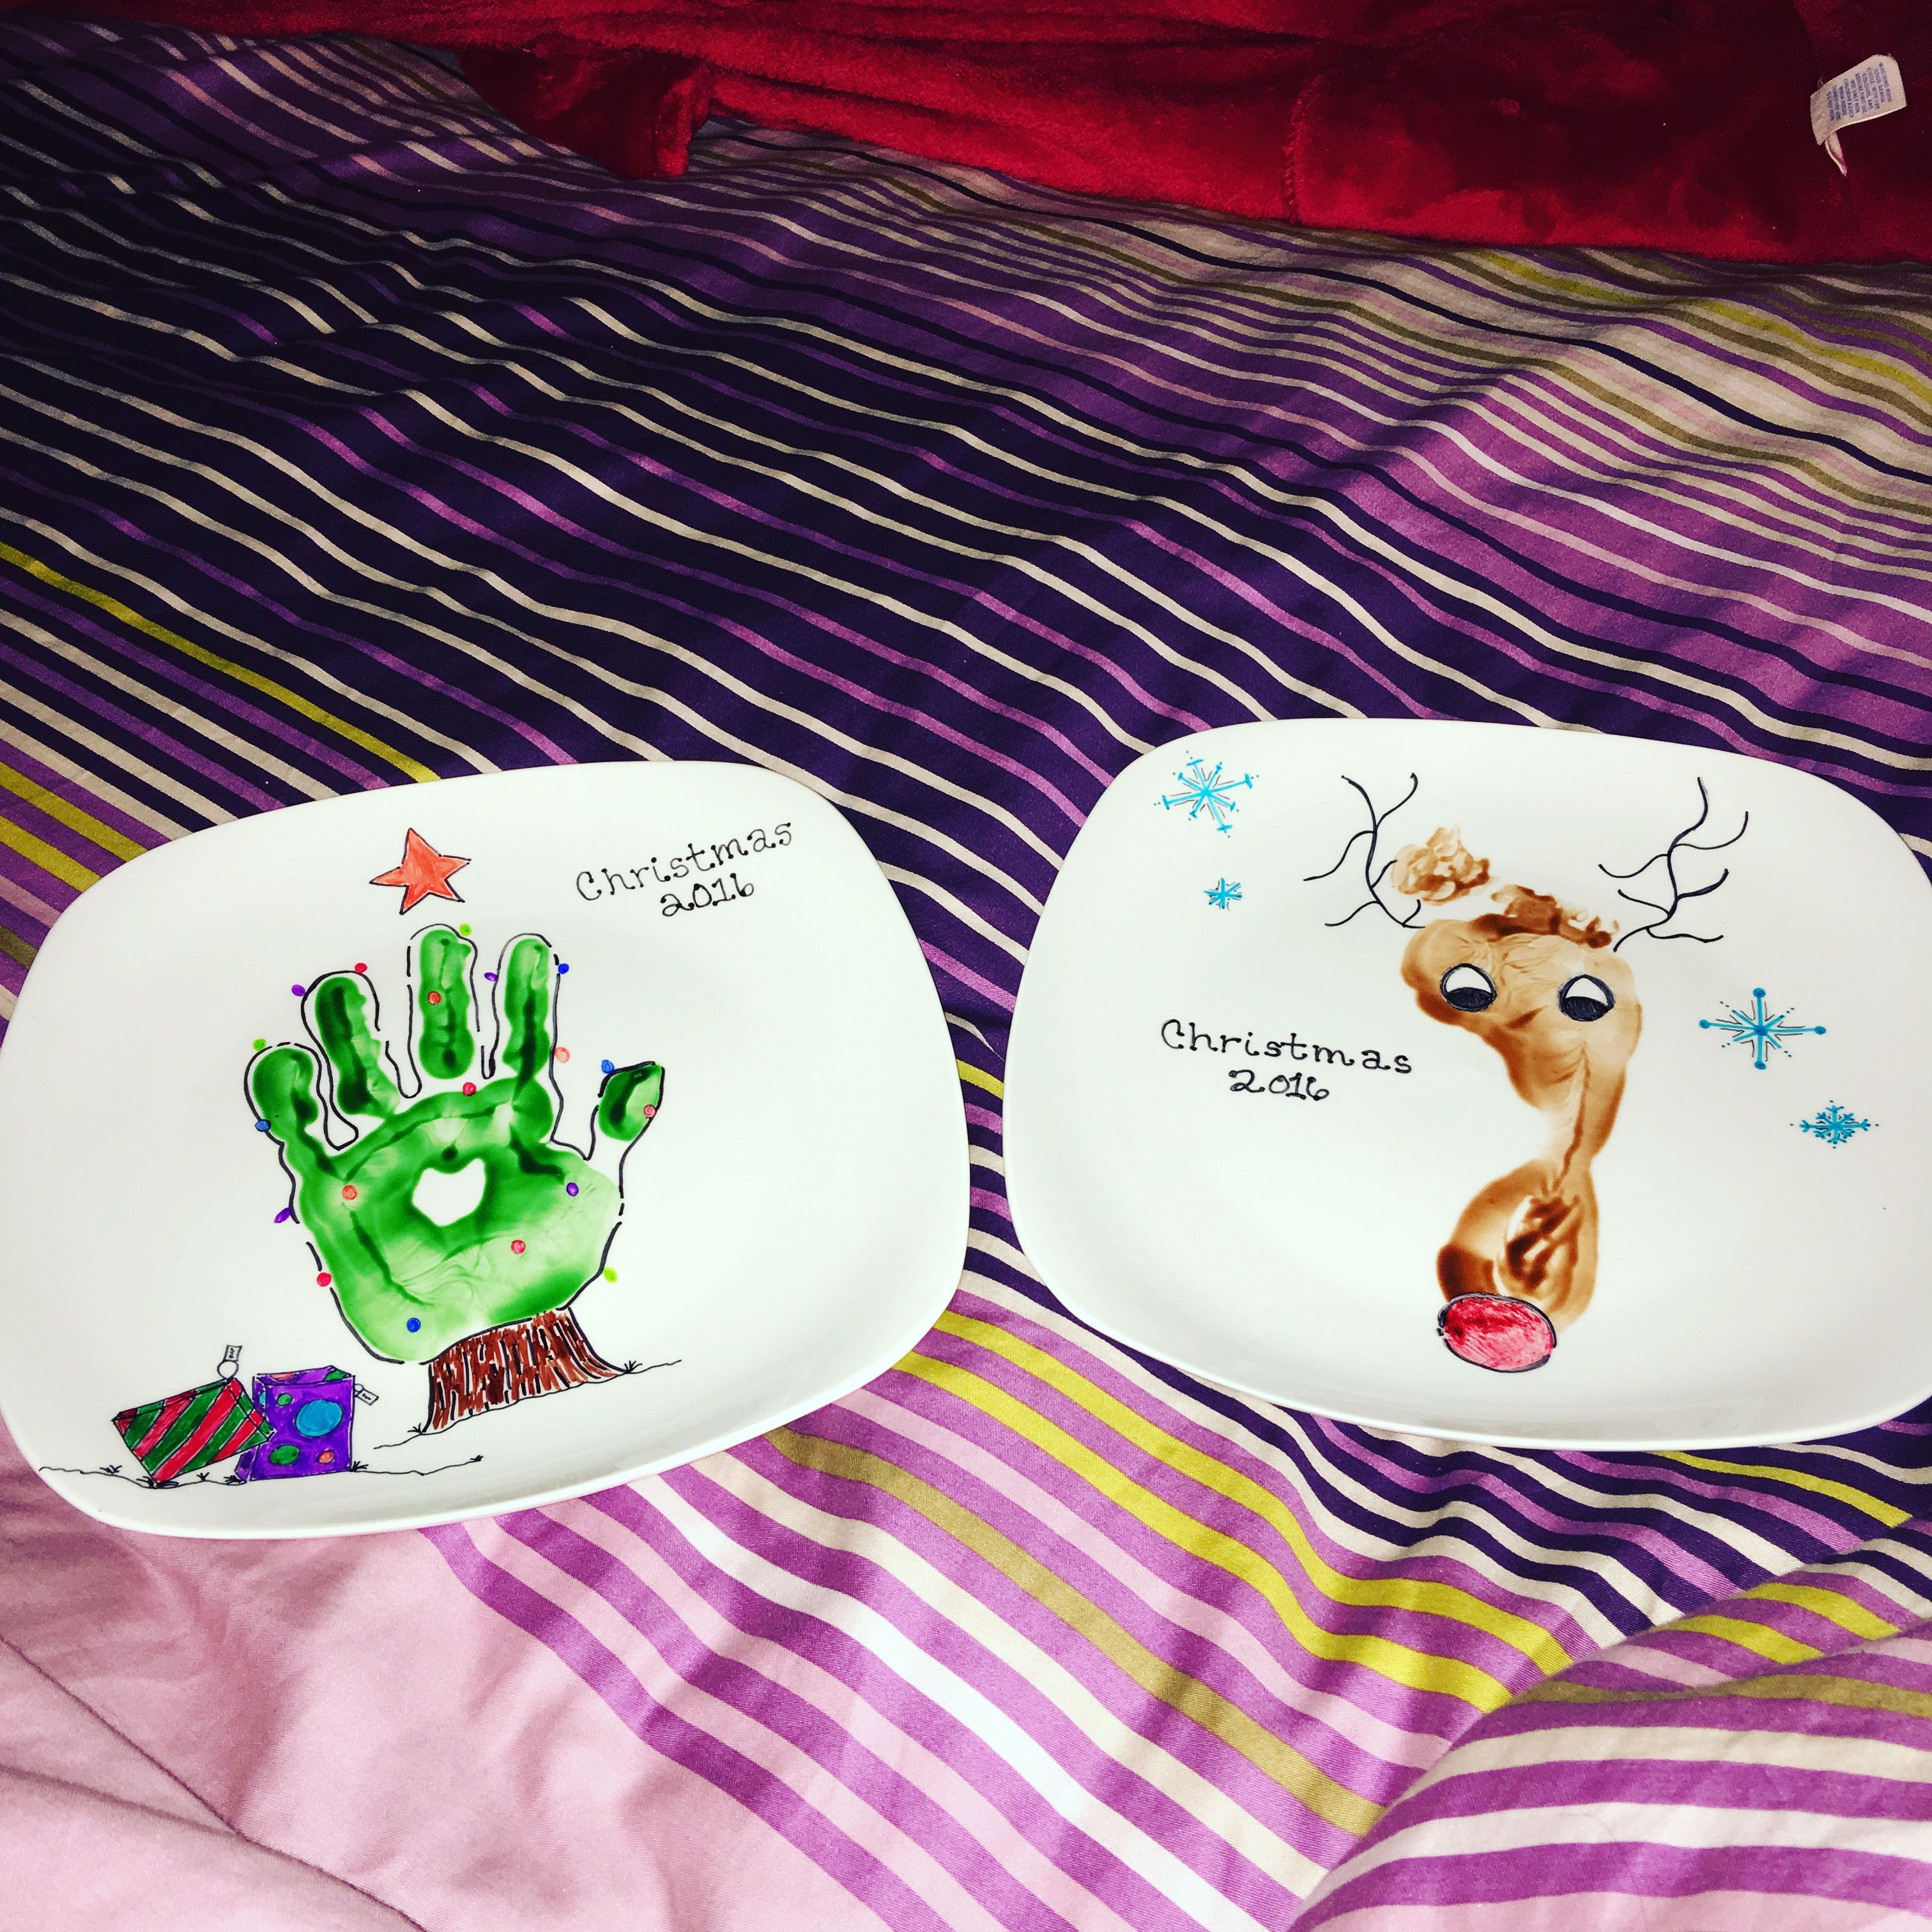 Christmas Plates My Kids Dipped Their Hands & Feet Into